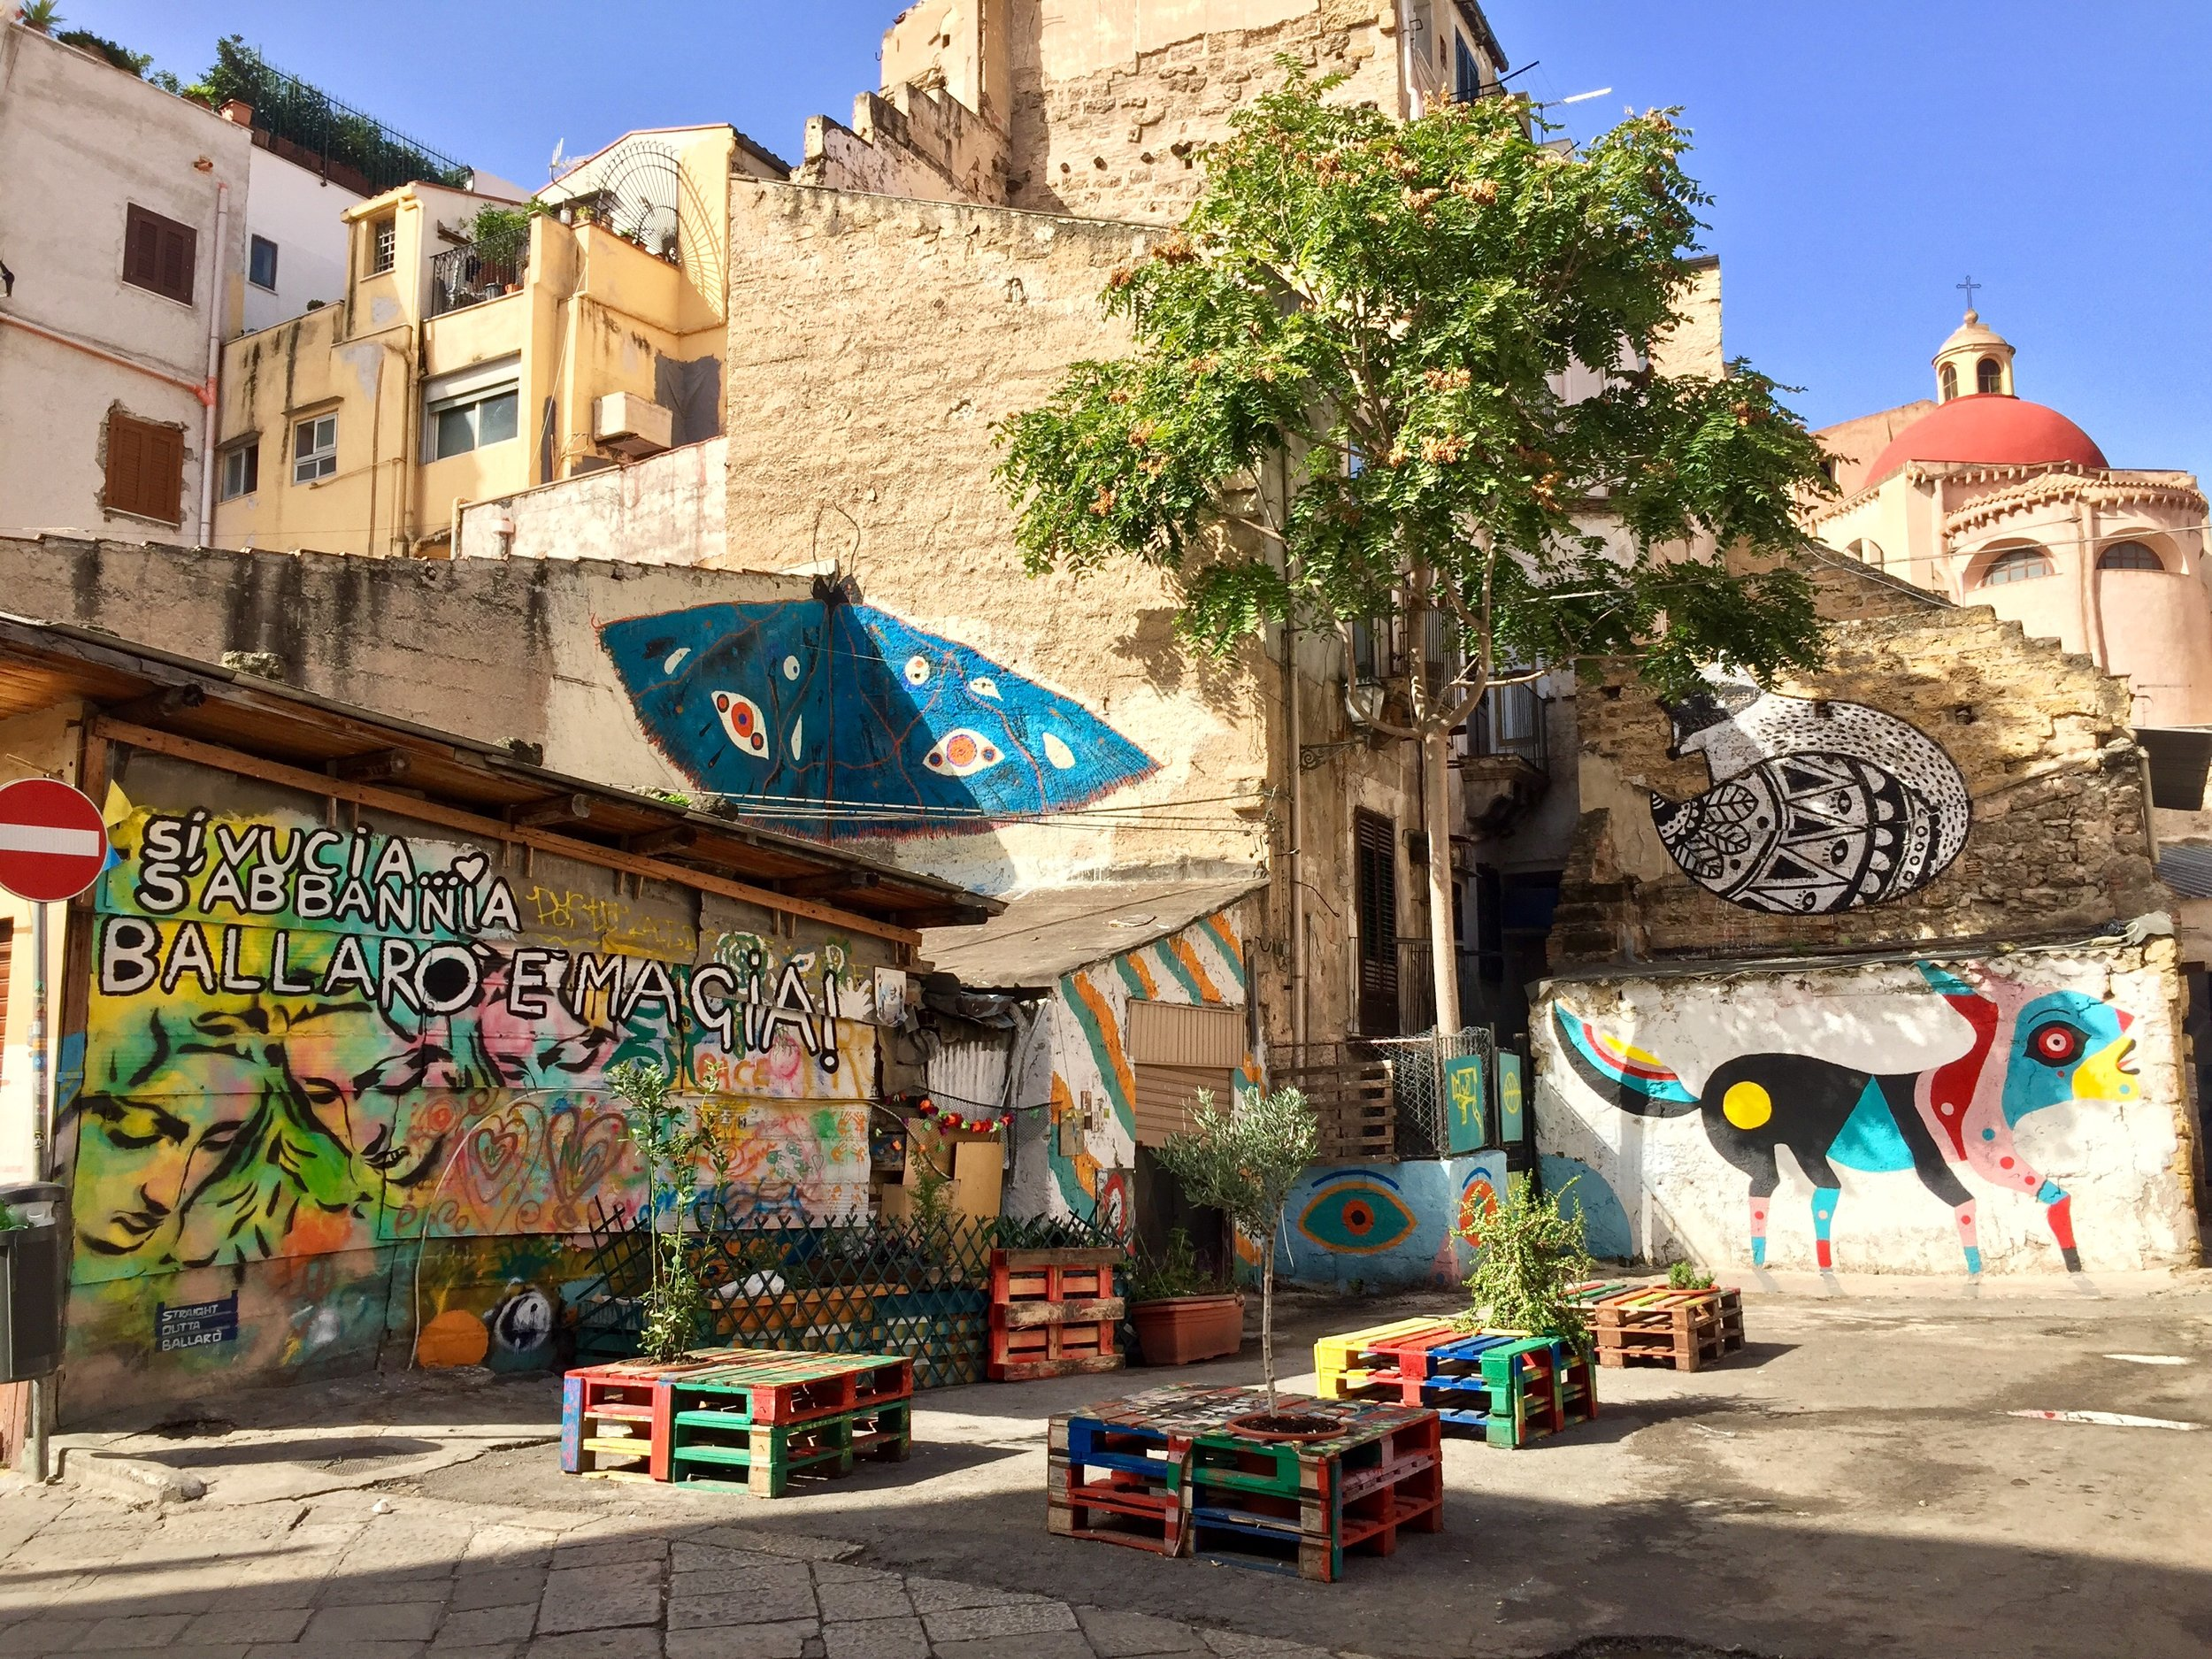 To me Palermo was like an outdoor art gallery with vibrant street art displayed on the old stone walls